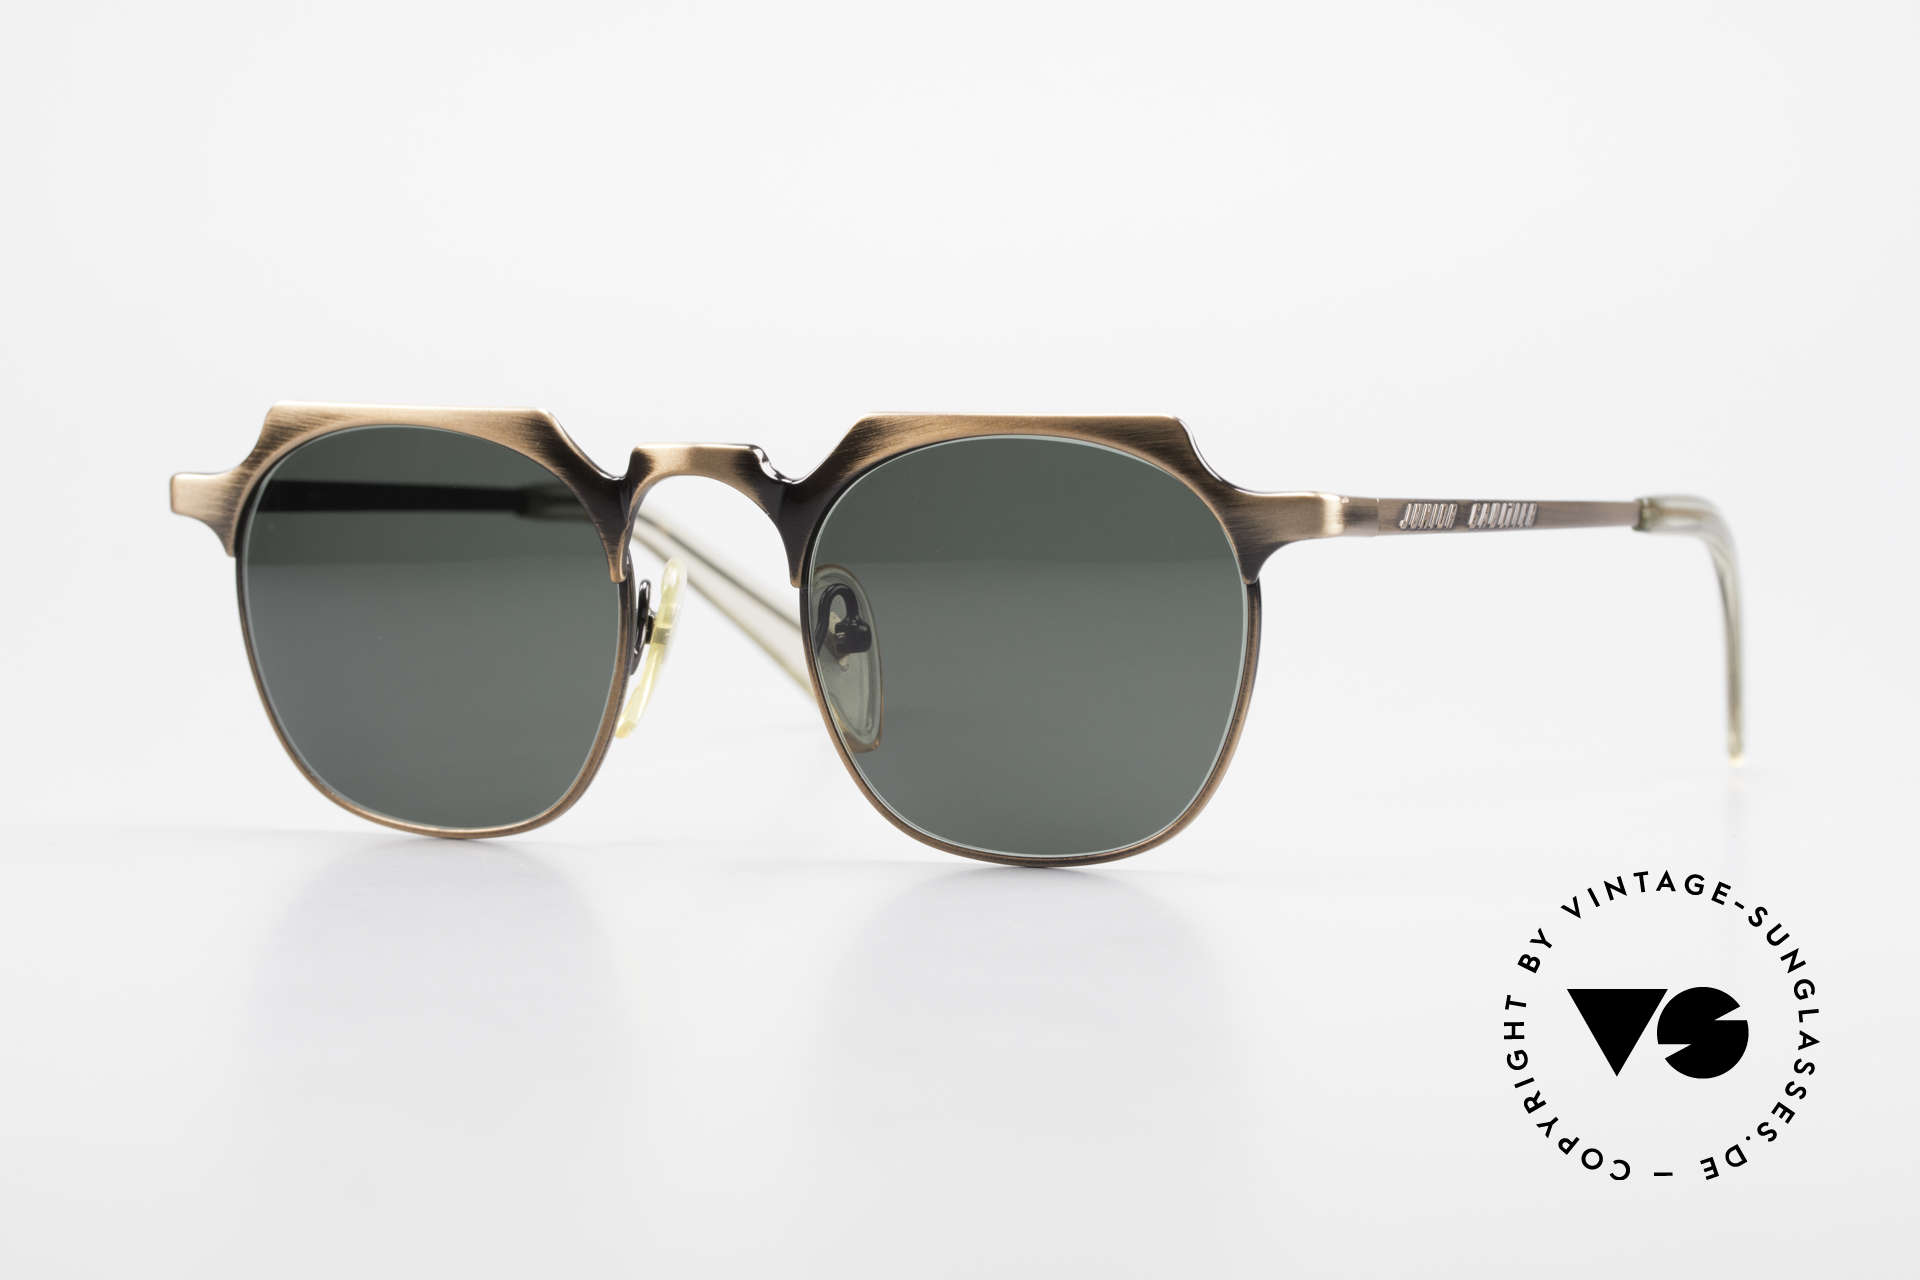 Jean Paul Gaultier 57-0171 Square Panto Sunglasses 90's, very noble vintage sunglasses by Jean Paul Gaultier, Made for Men